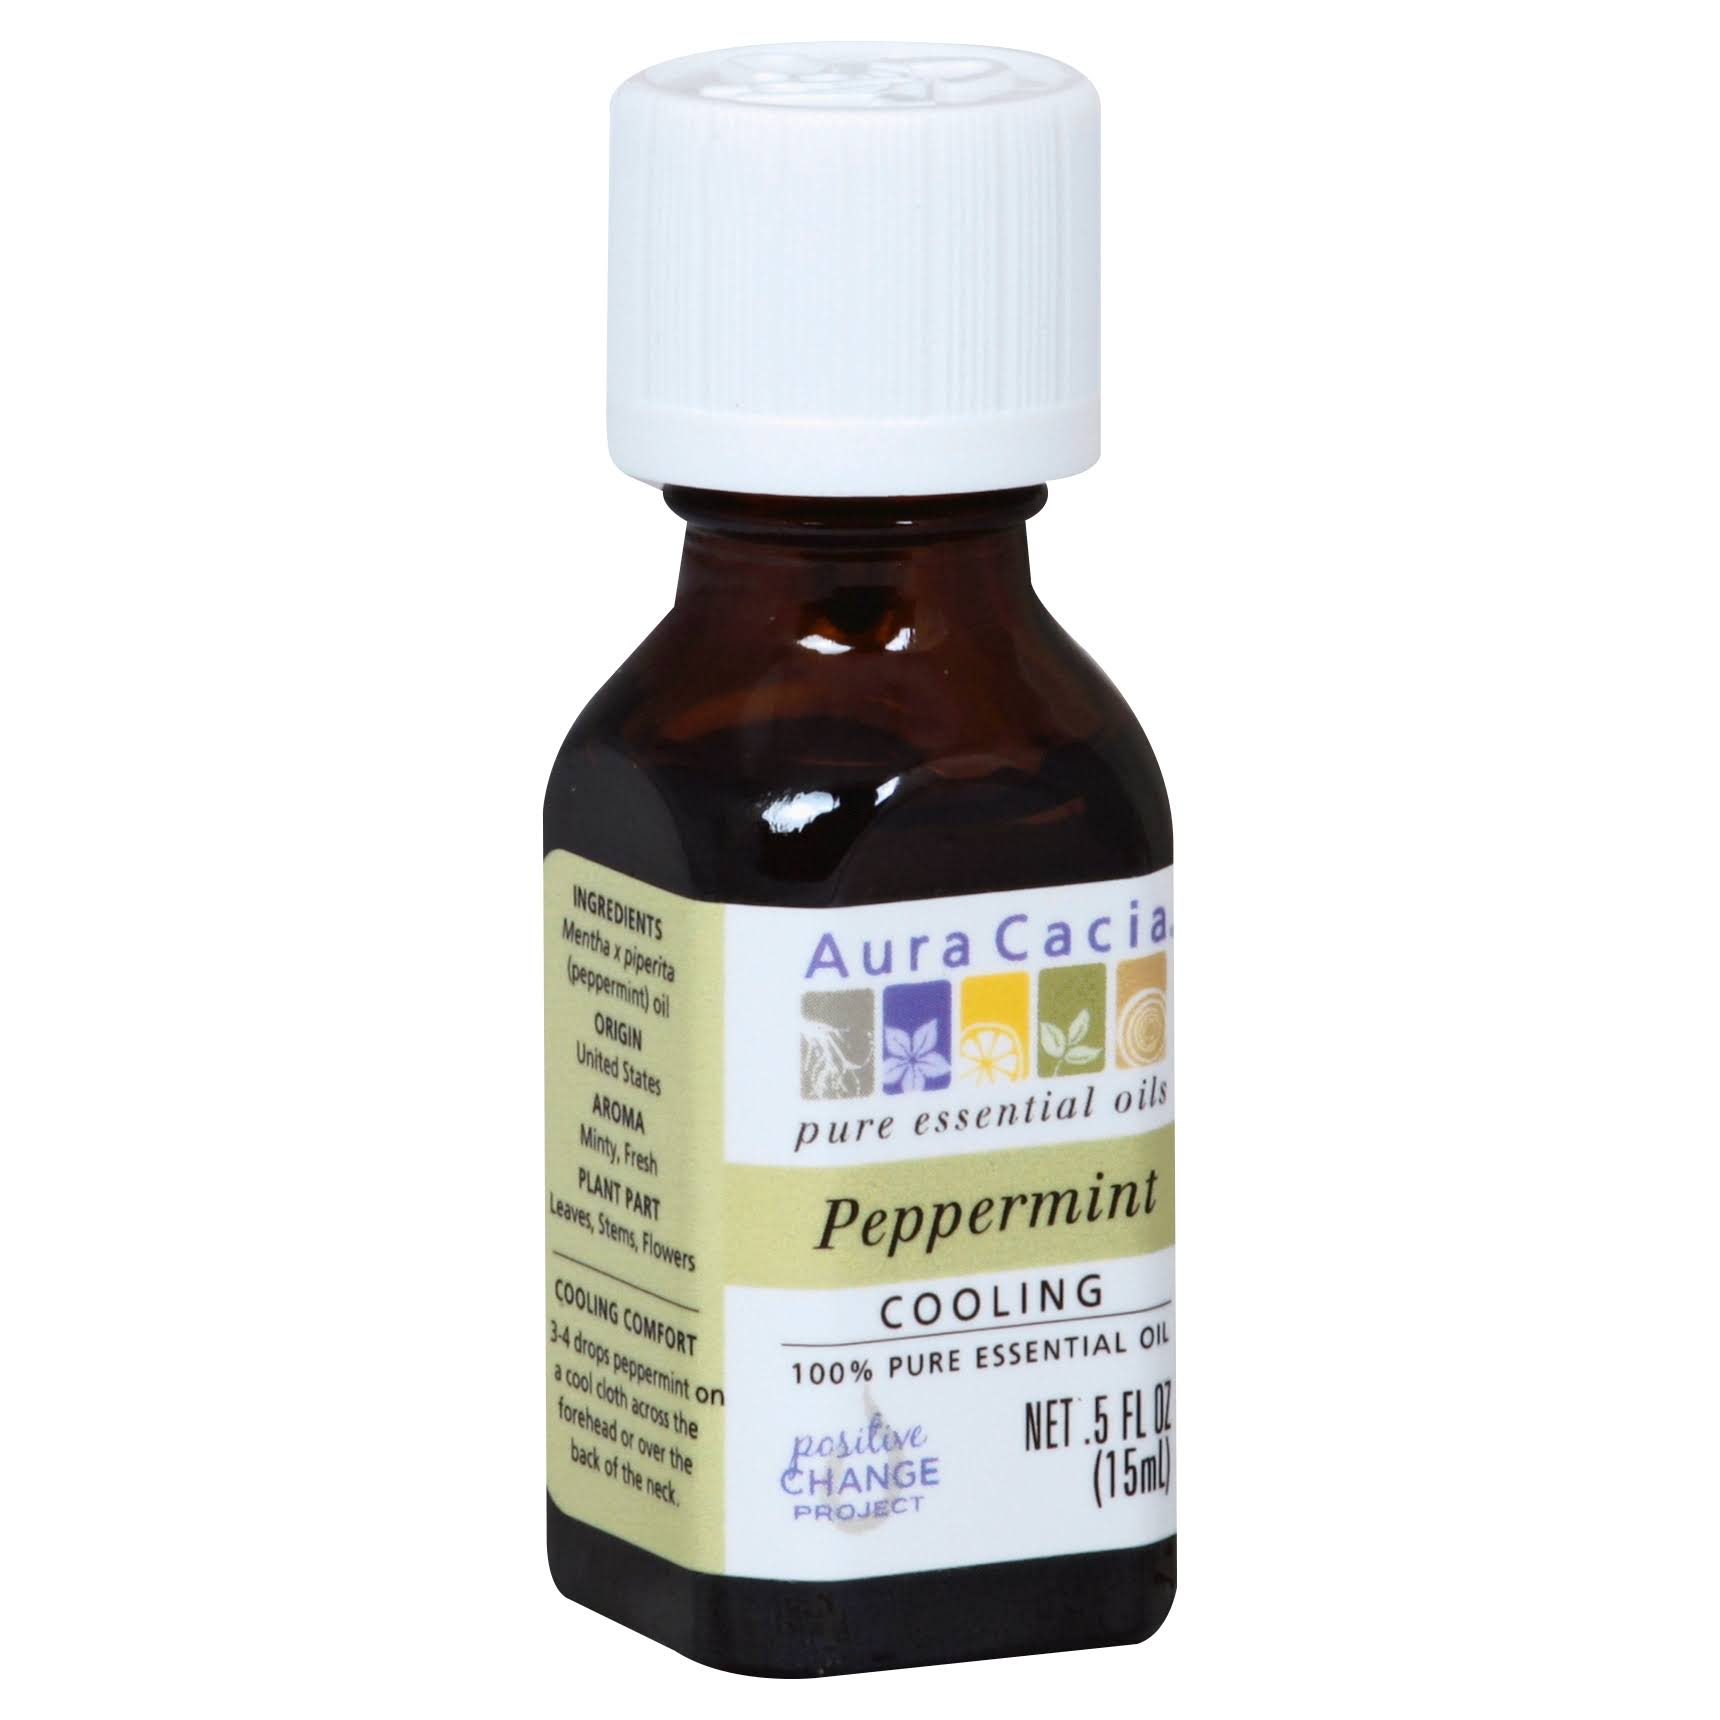 Aura Cacia Essential Oil - Peppermint, 15ml